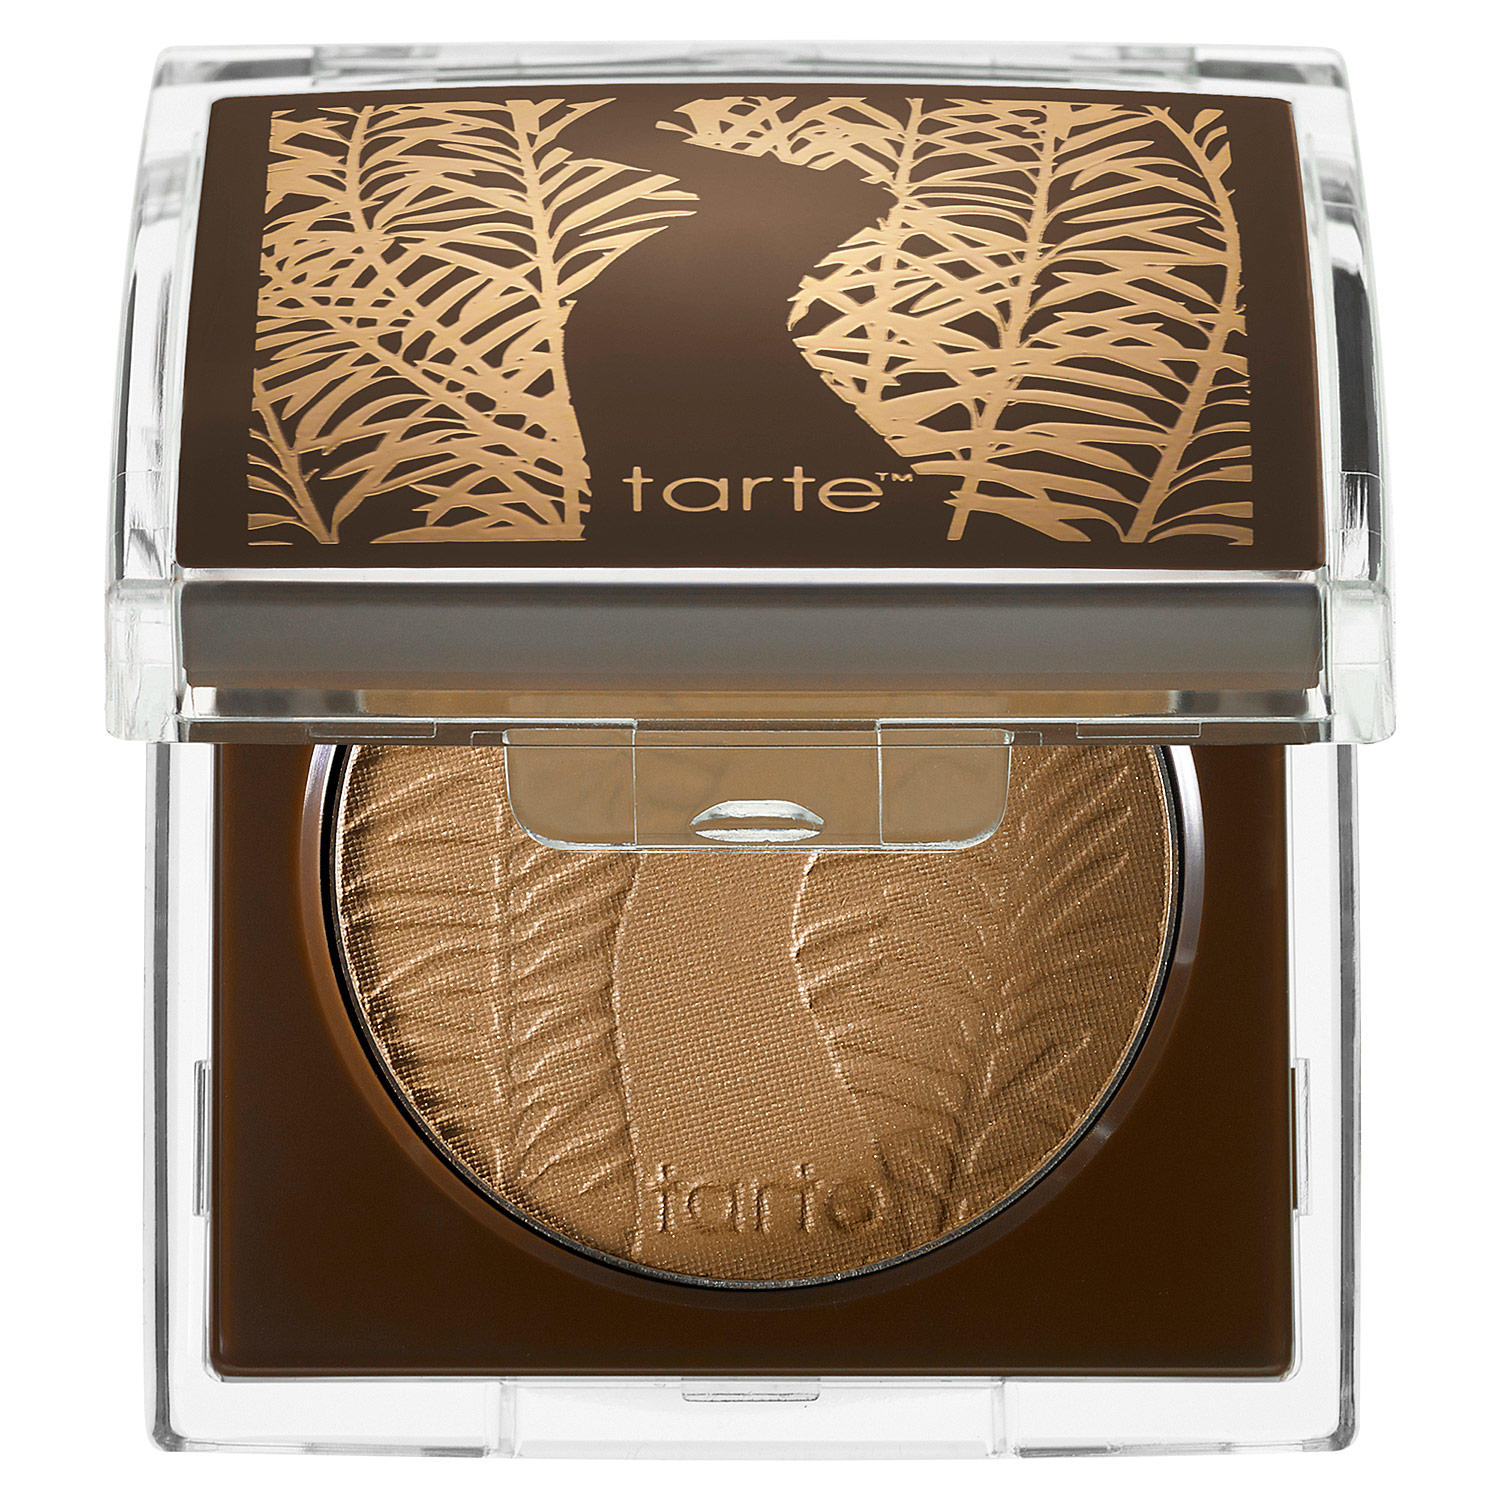 Tarte Amazonian Clay Volumizing Brow Powder Blonde